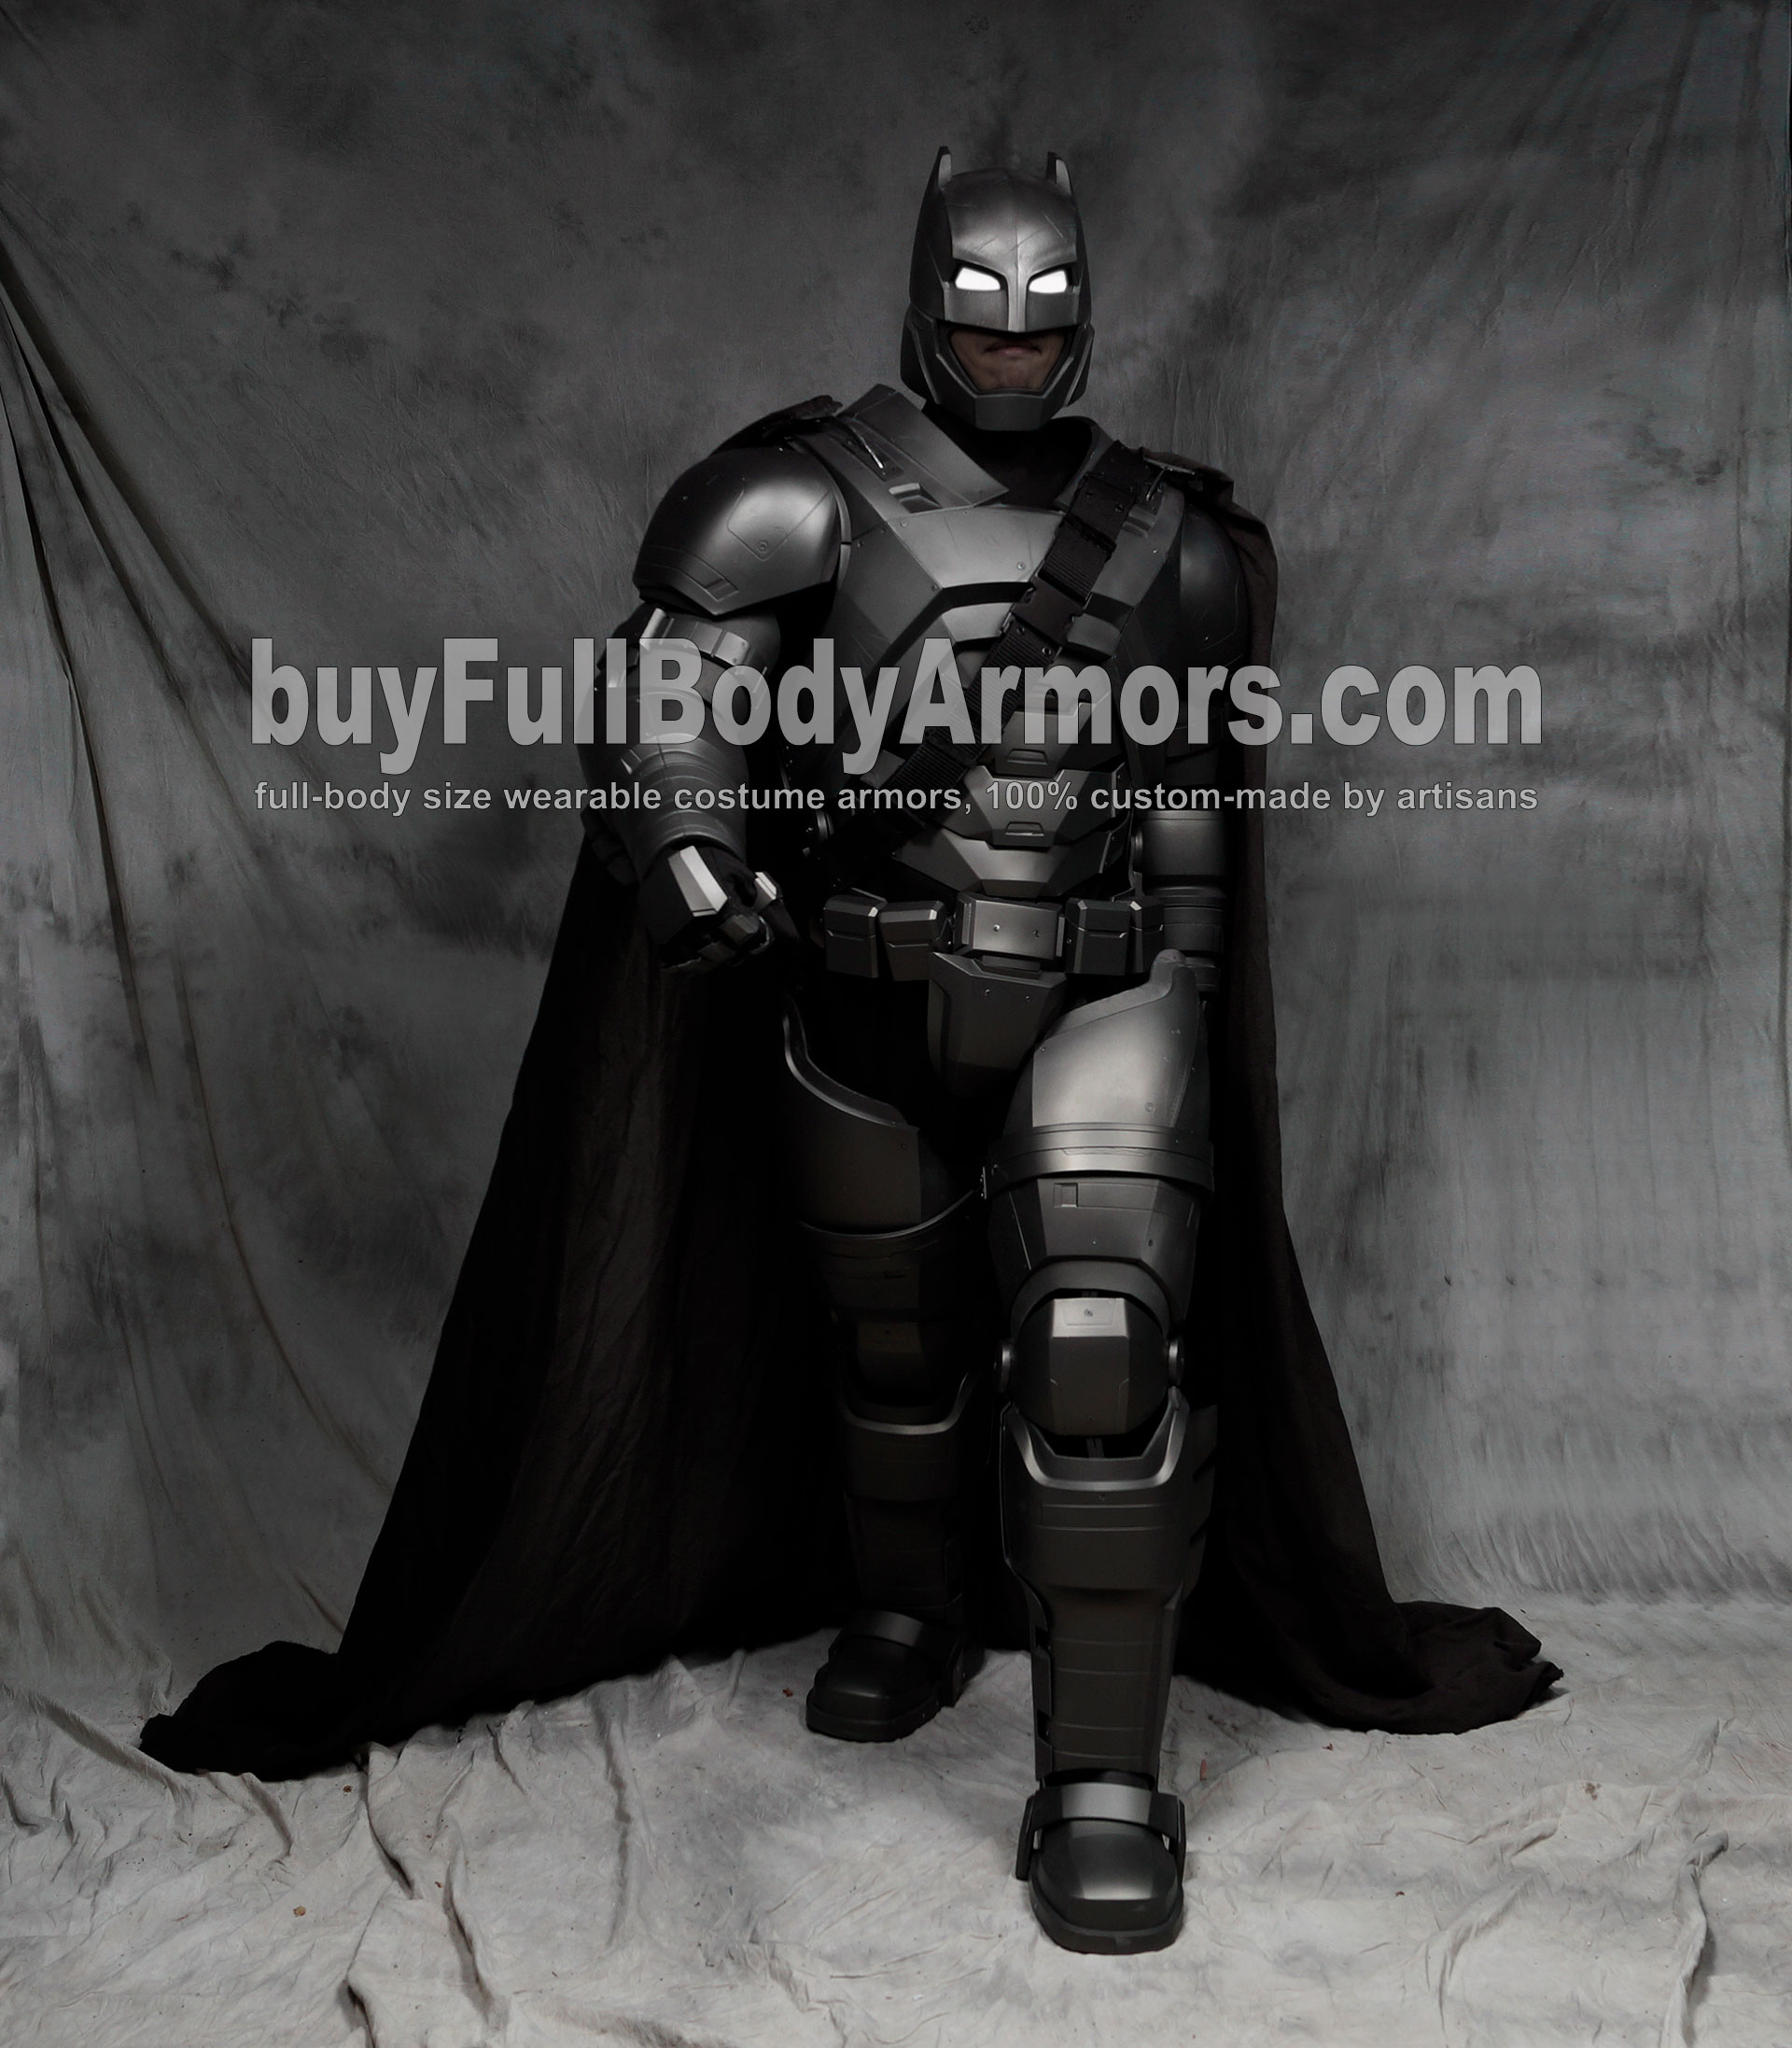 The Wearable Armored Batsuit (Batman armor suit costume) walk